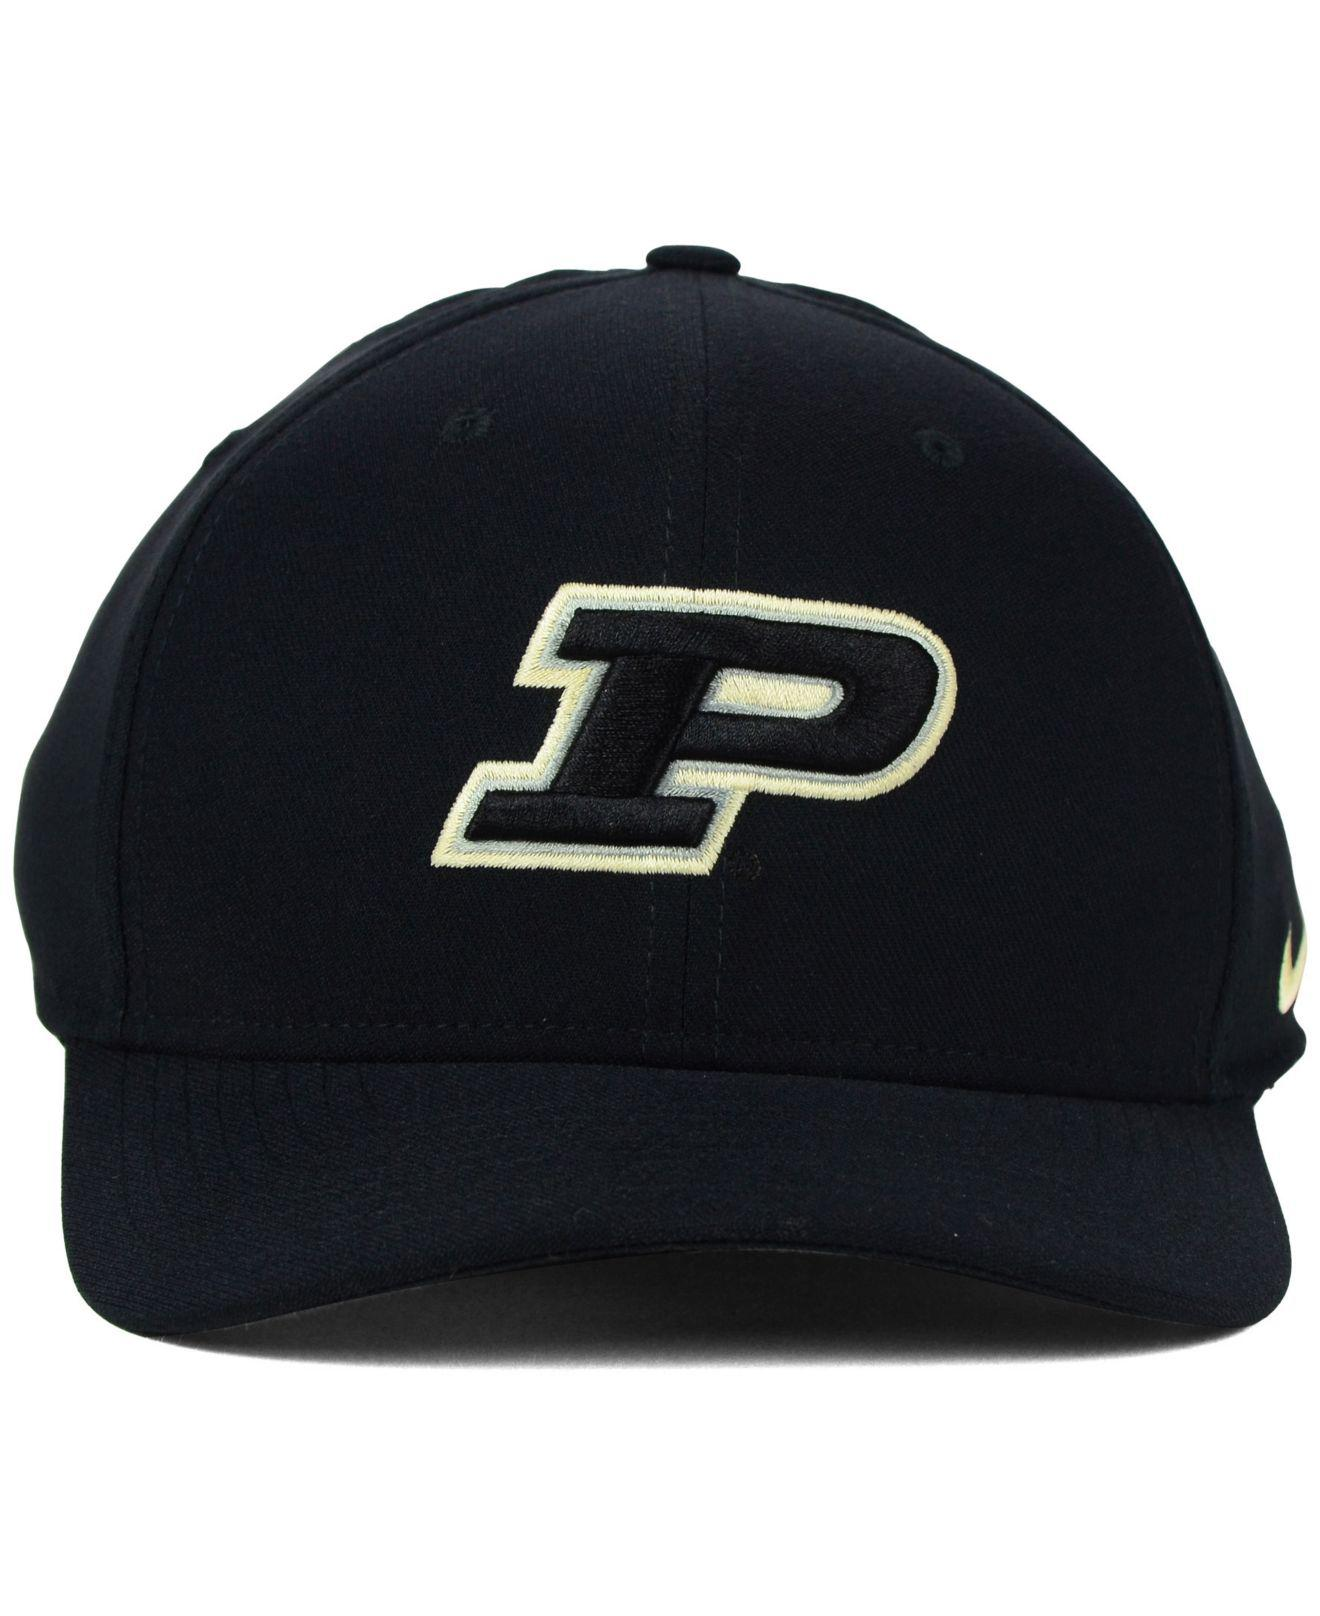 newest b9456 209e5 Lyst - Nike Purdue Boilermakers Classic Swoosh Cap in Black for Men